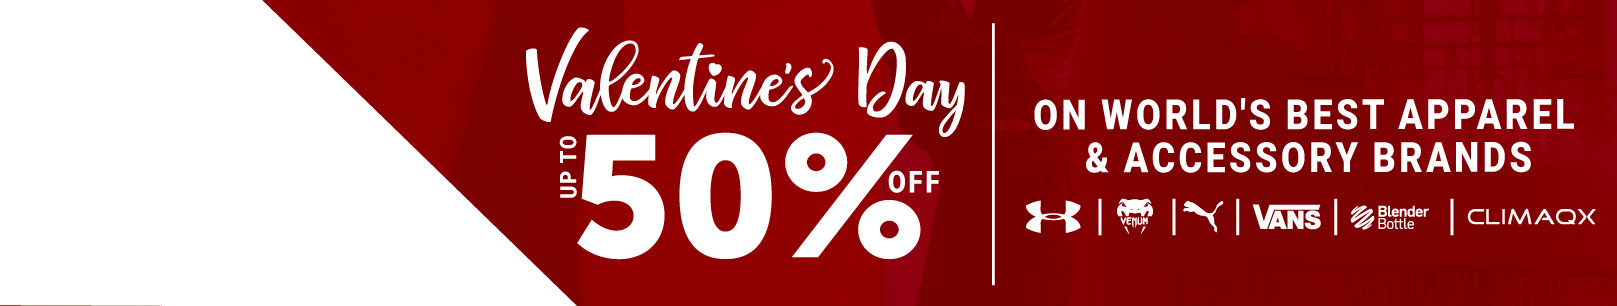 Apparel & accessories special offers